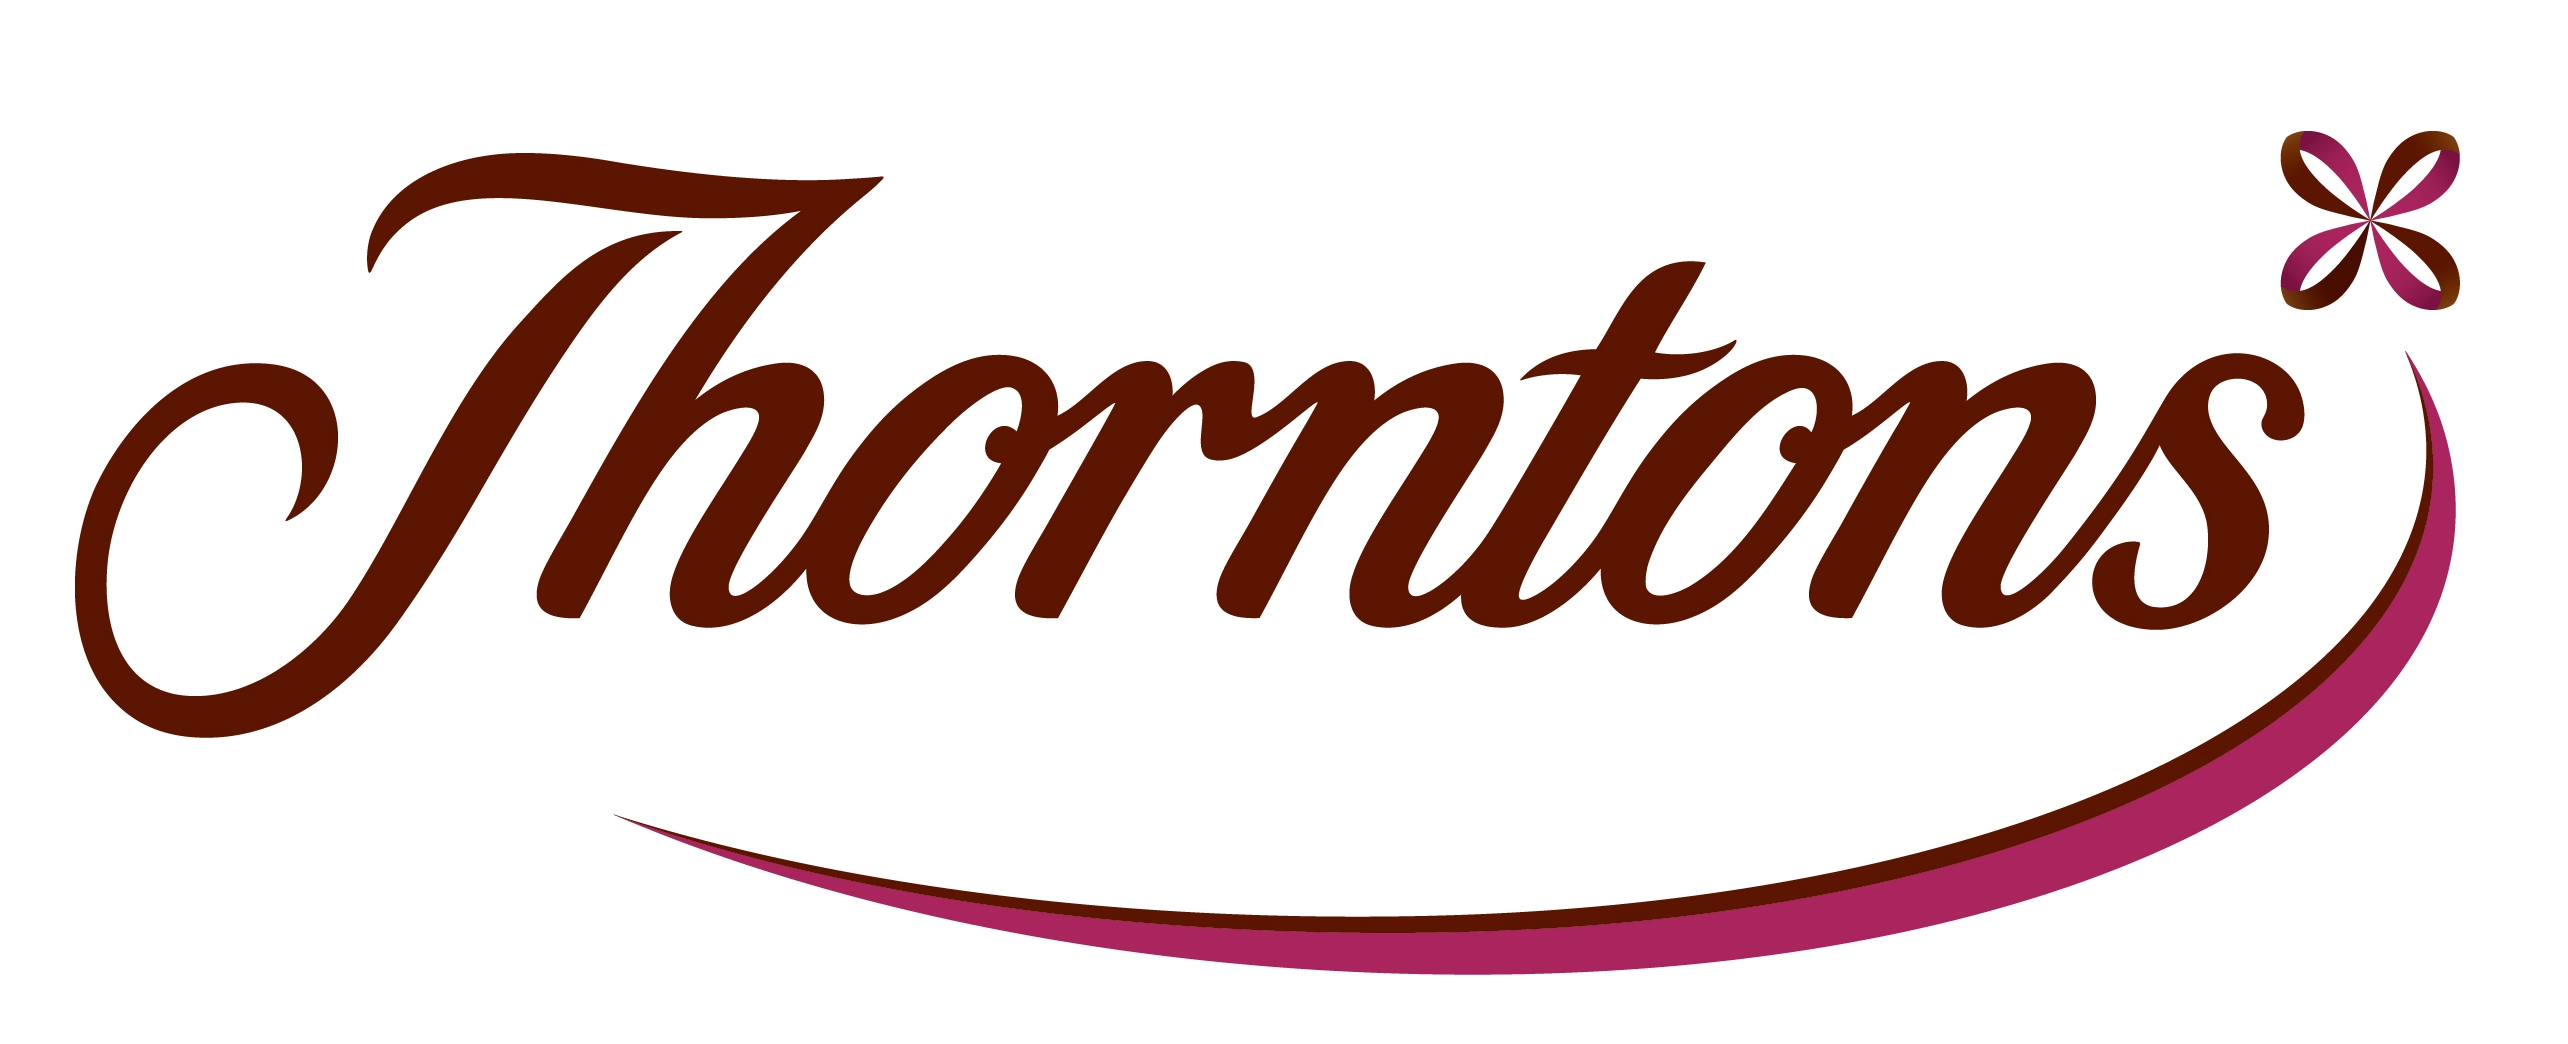 analysis of the uk confectionery industry thorntons To celebrate mother's day this year, thorntons is giving retailers the chance to   perfect store website wwwyourperfectstorecouk, fill out the application form and  tell  has long been seen as a masterpiece of chocolate making  for the latest  news, analysis and key opinions in the food and drink industry.